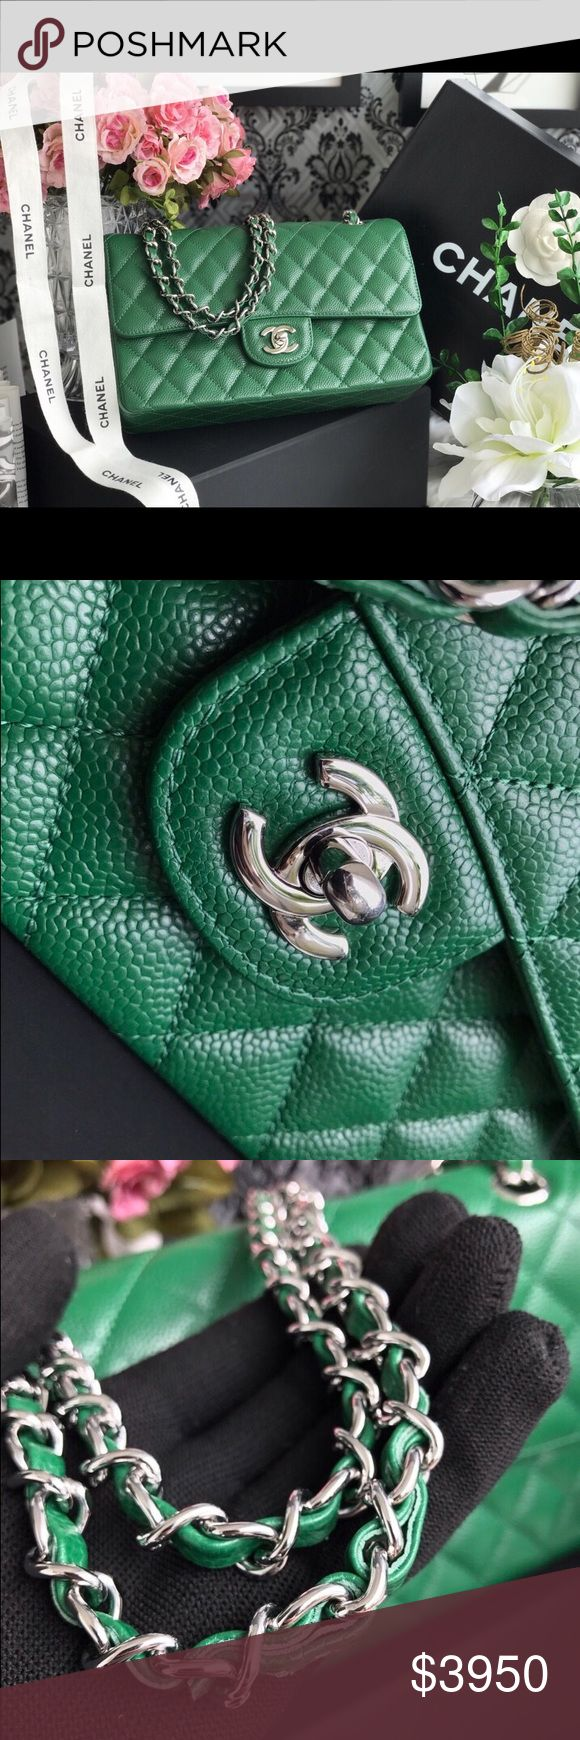 Chanel double flap handbag Authentic Chanel double flap in like new condition. I just wore  less than 5 times. The authentication card, dust bag, and box are included. Very rare color and it's hard to find. Nice bag and good price let me know if you're interested. CHANEL Bags Shoulder Bags